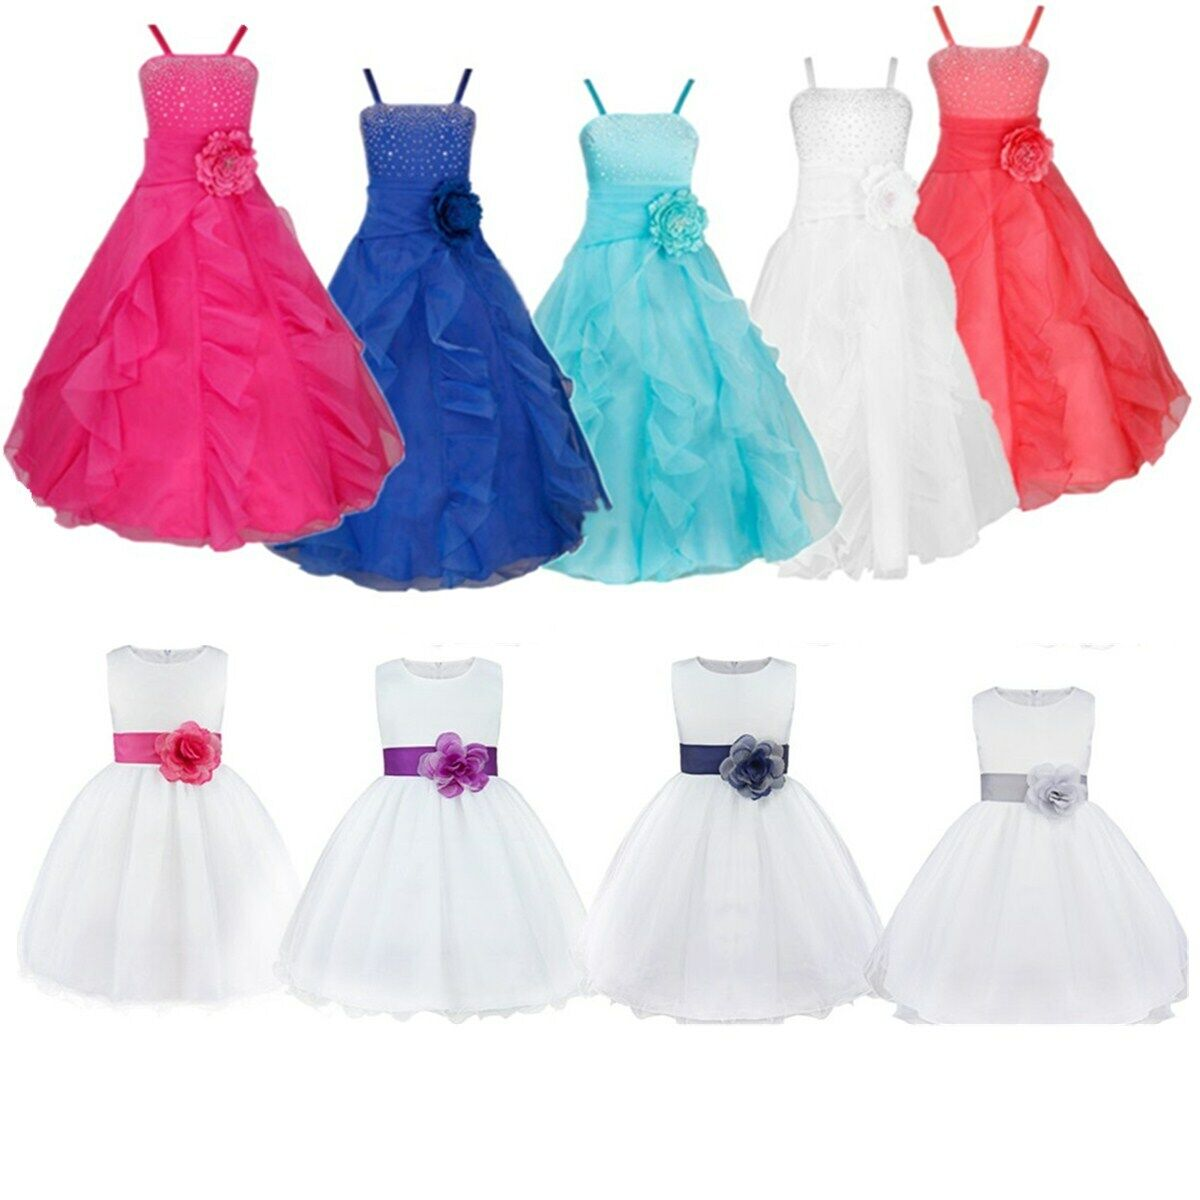 Kids Bridesmaid Gown Flower Girls Dress Princess Wedding Pageant Formal Party